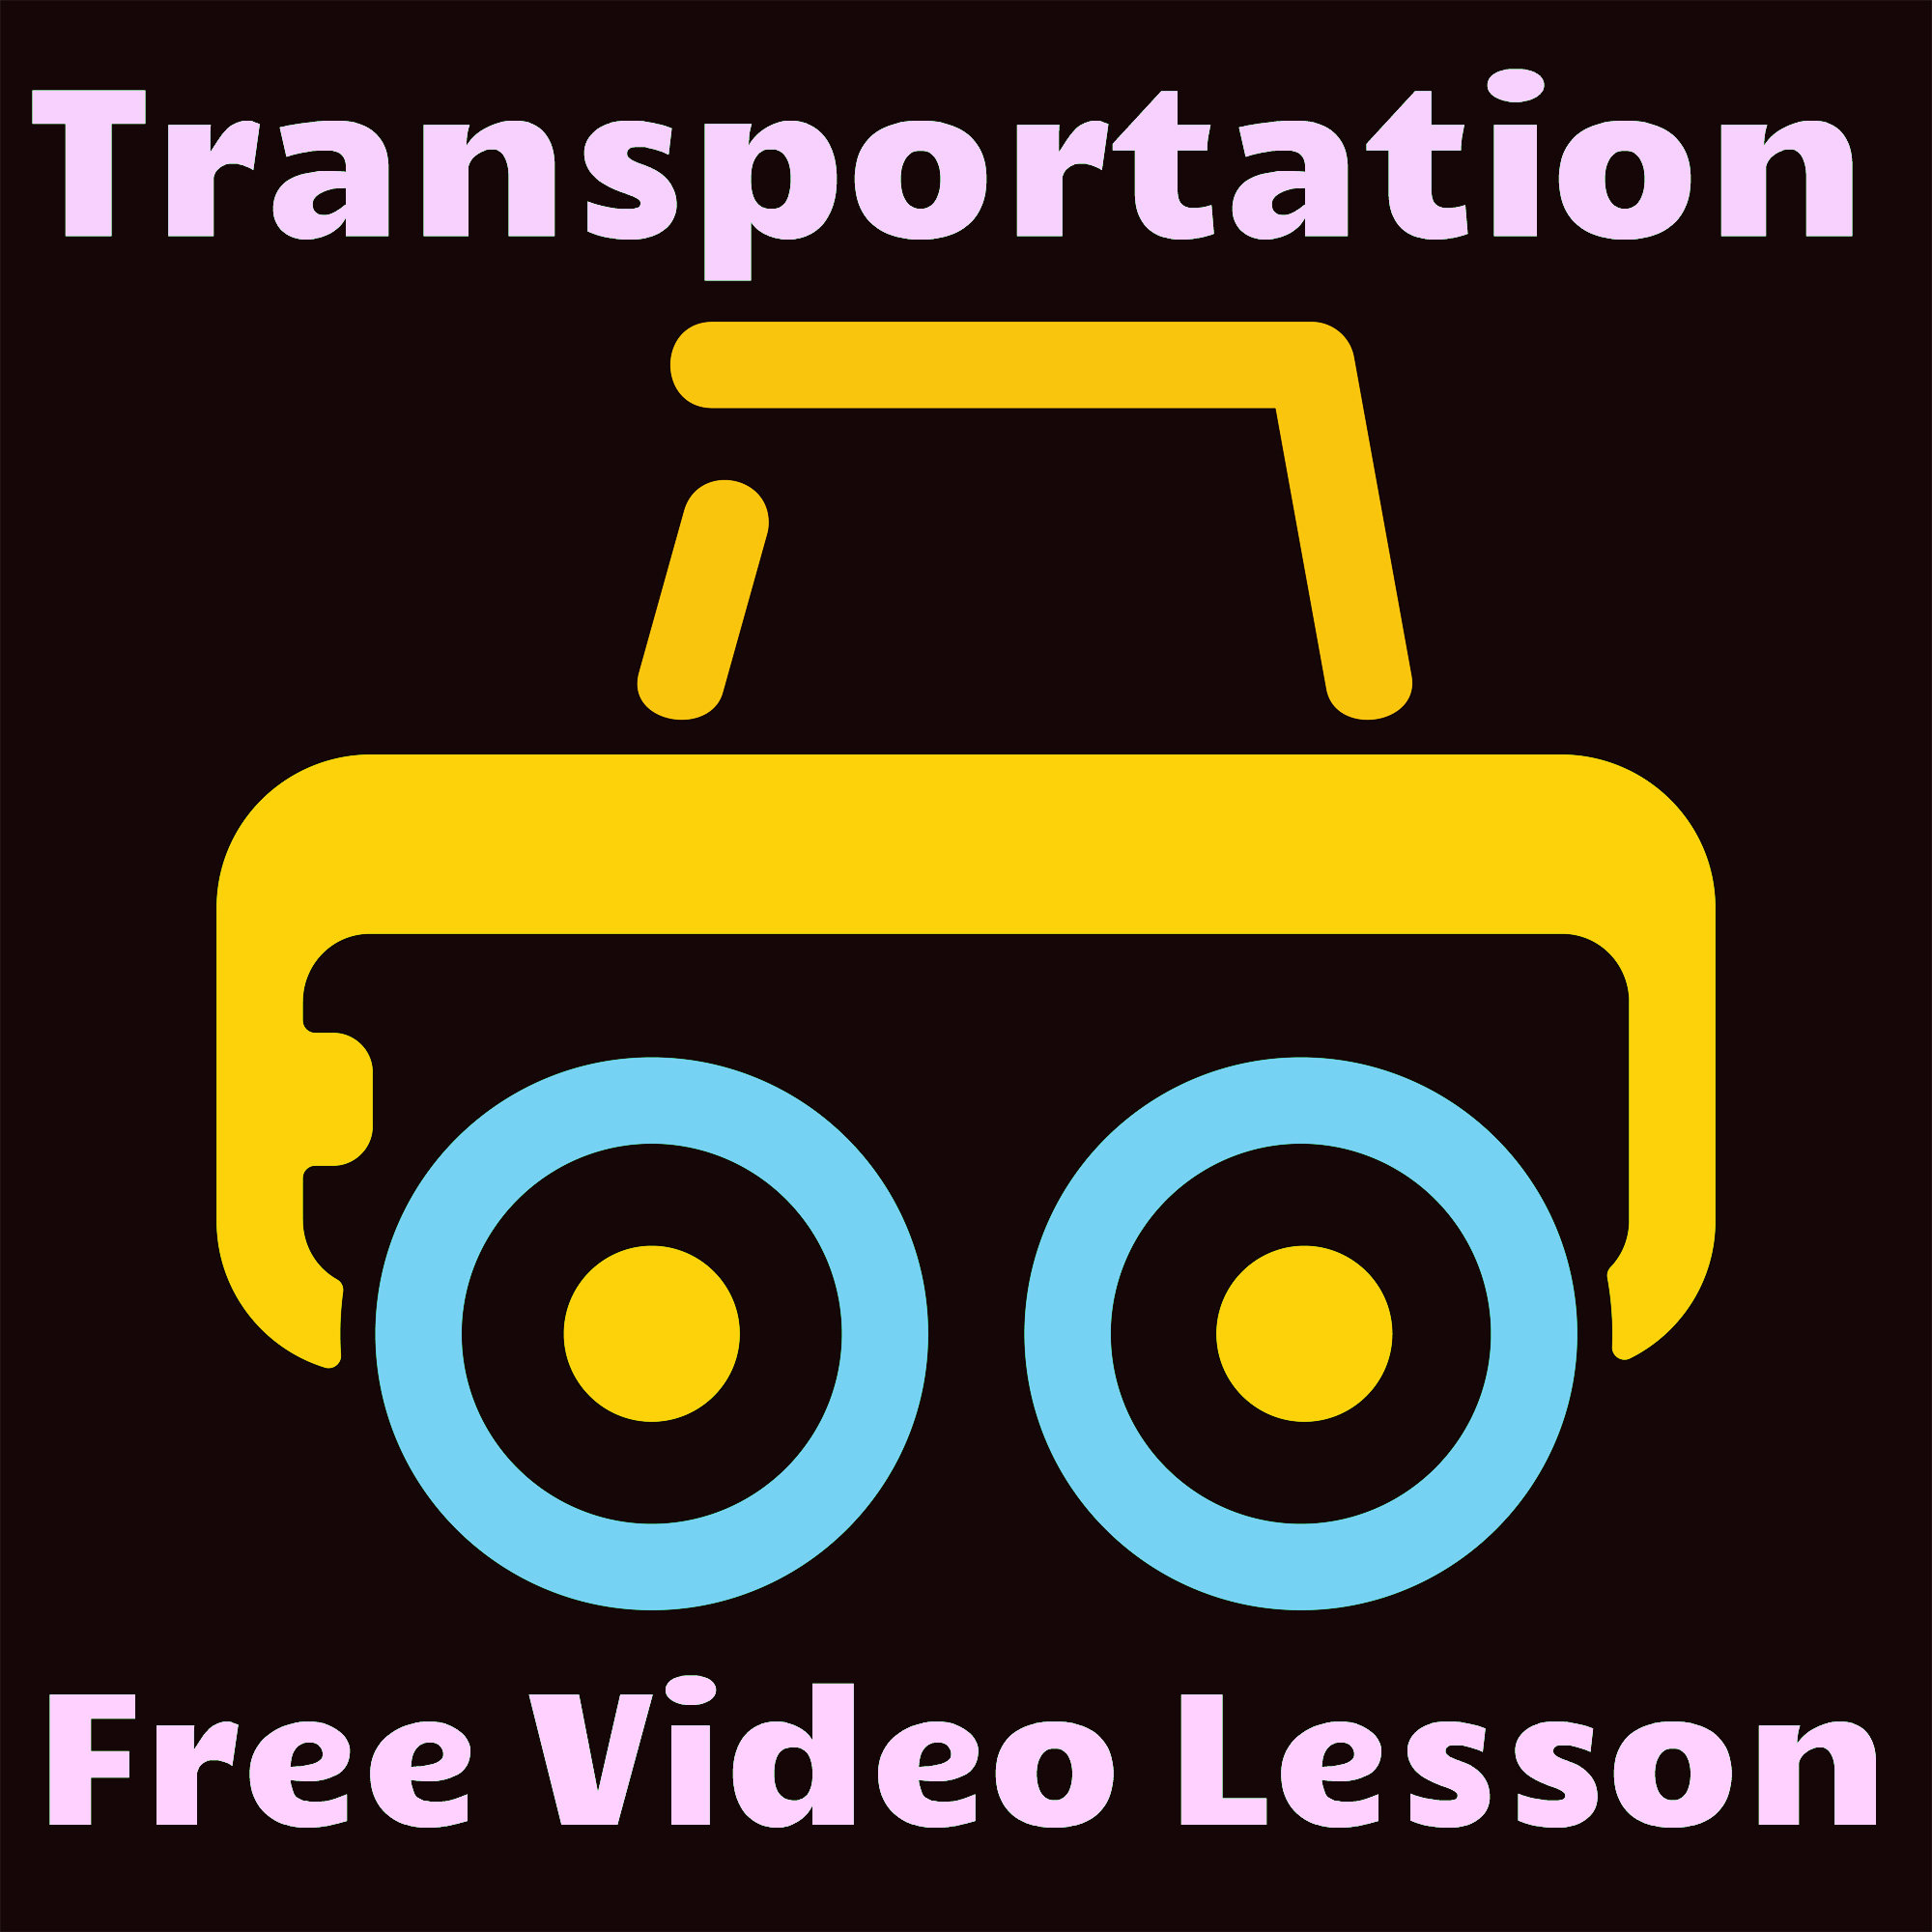 Transportation Video Lesson